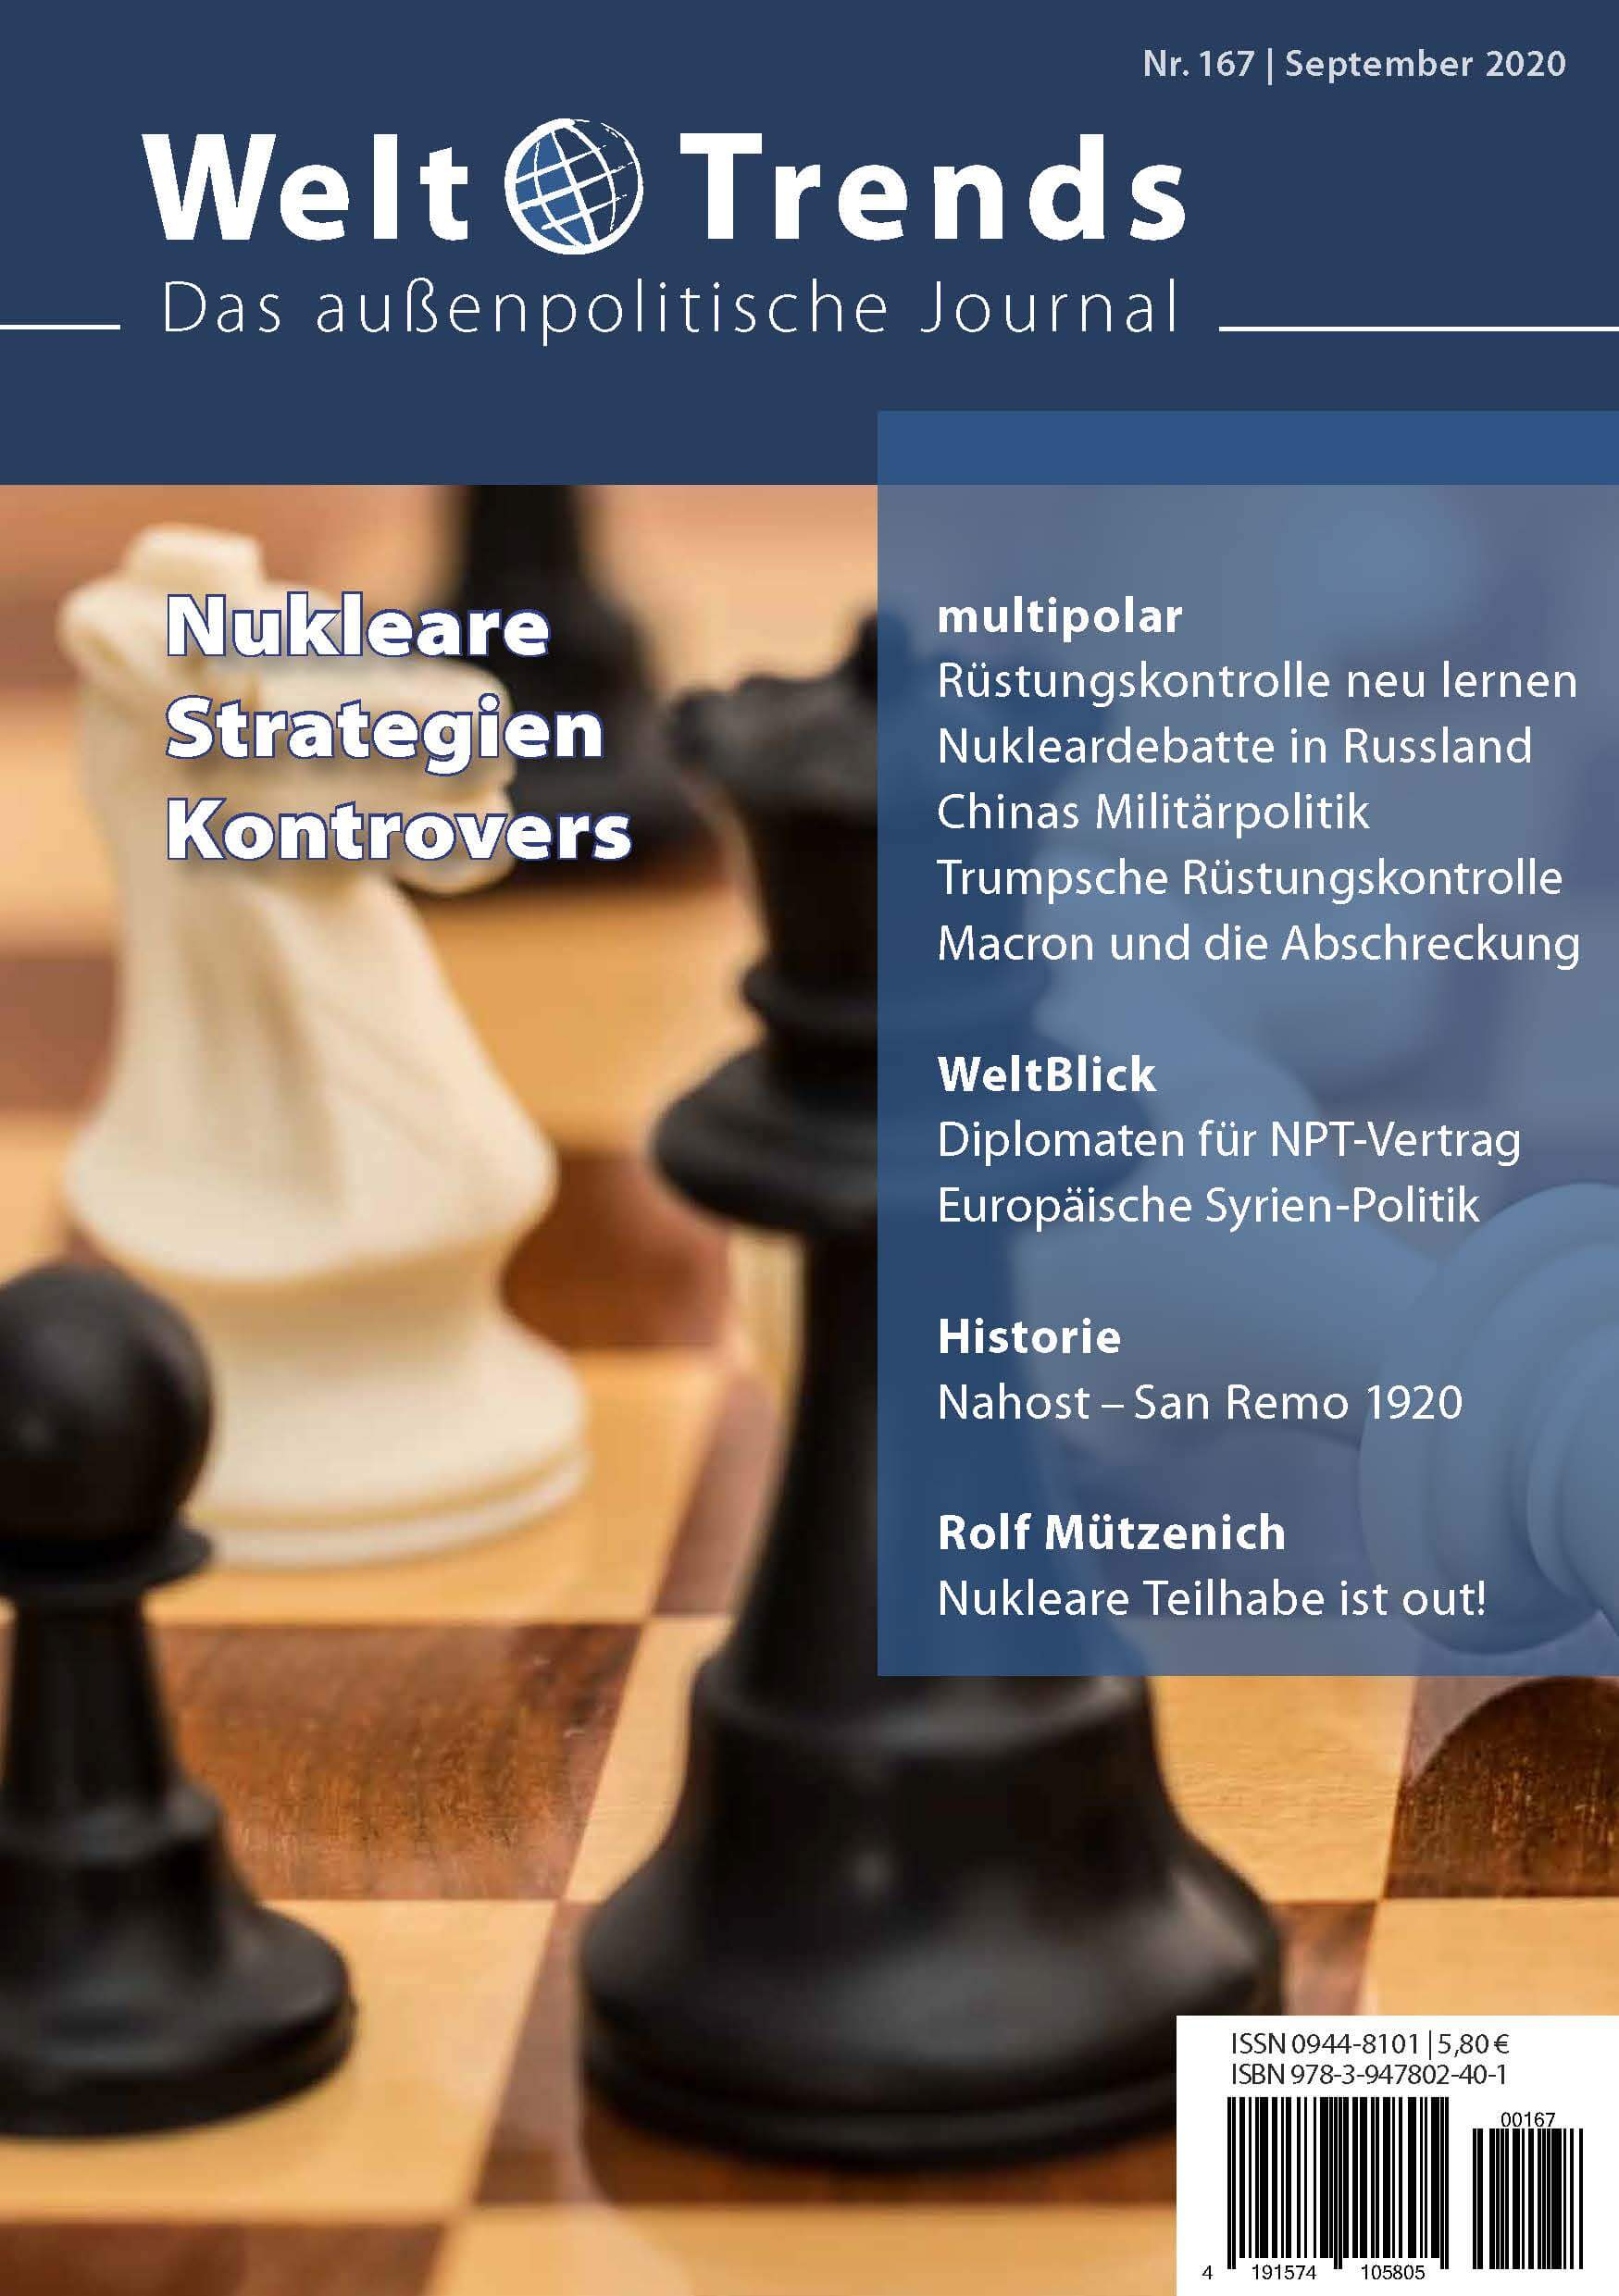 WeltTrends 167: Nukleare Strategien kontrovers